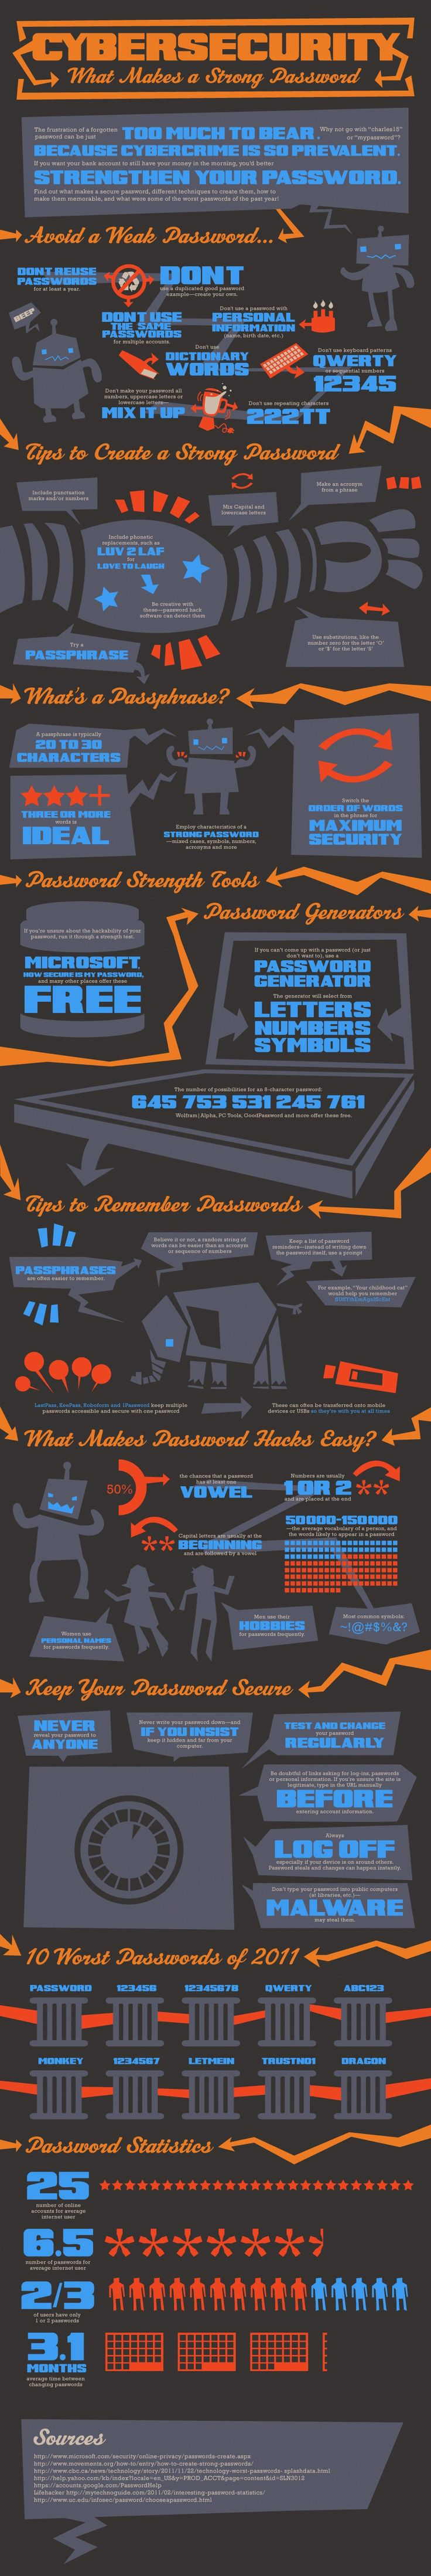 What makes a strong password [infographic] | Best Infographics